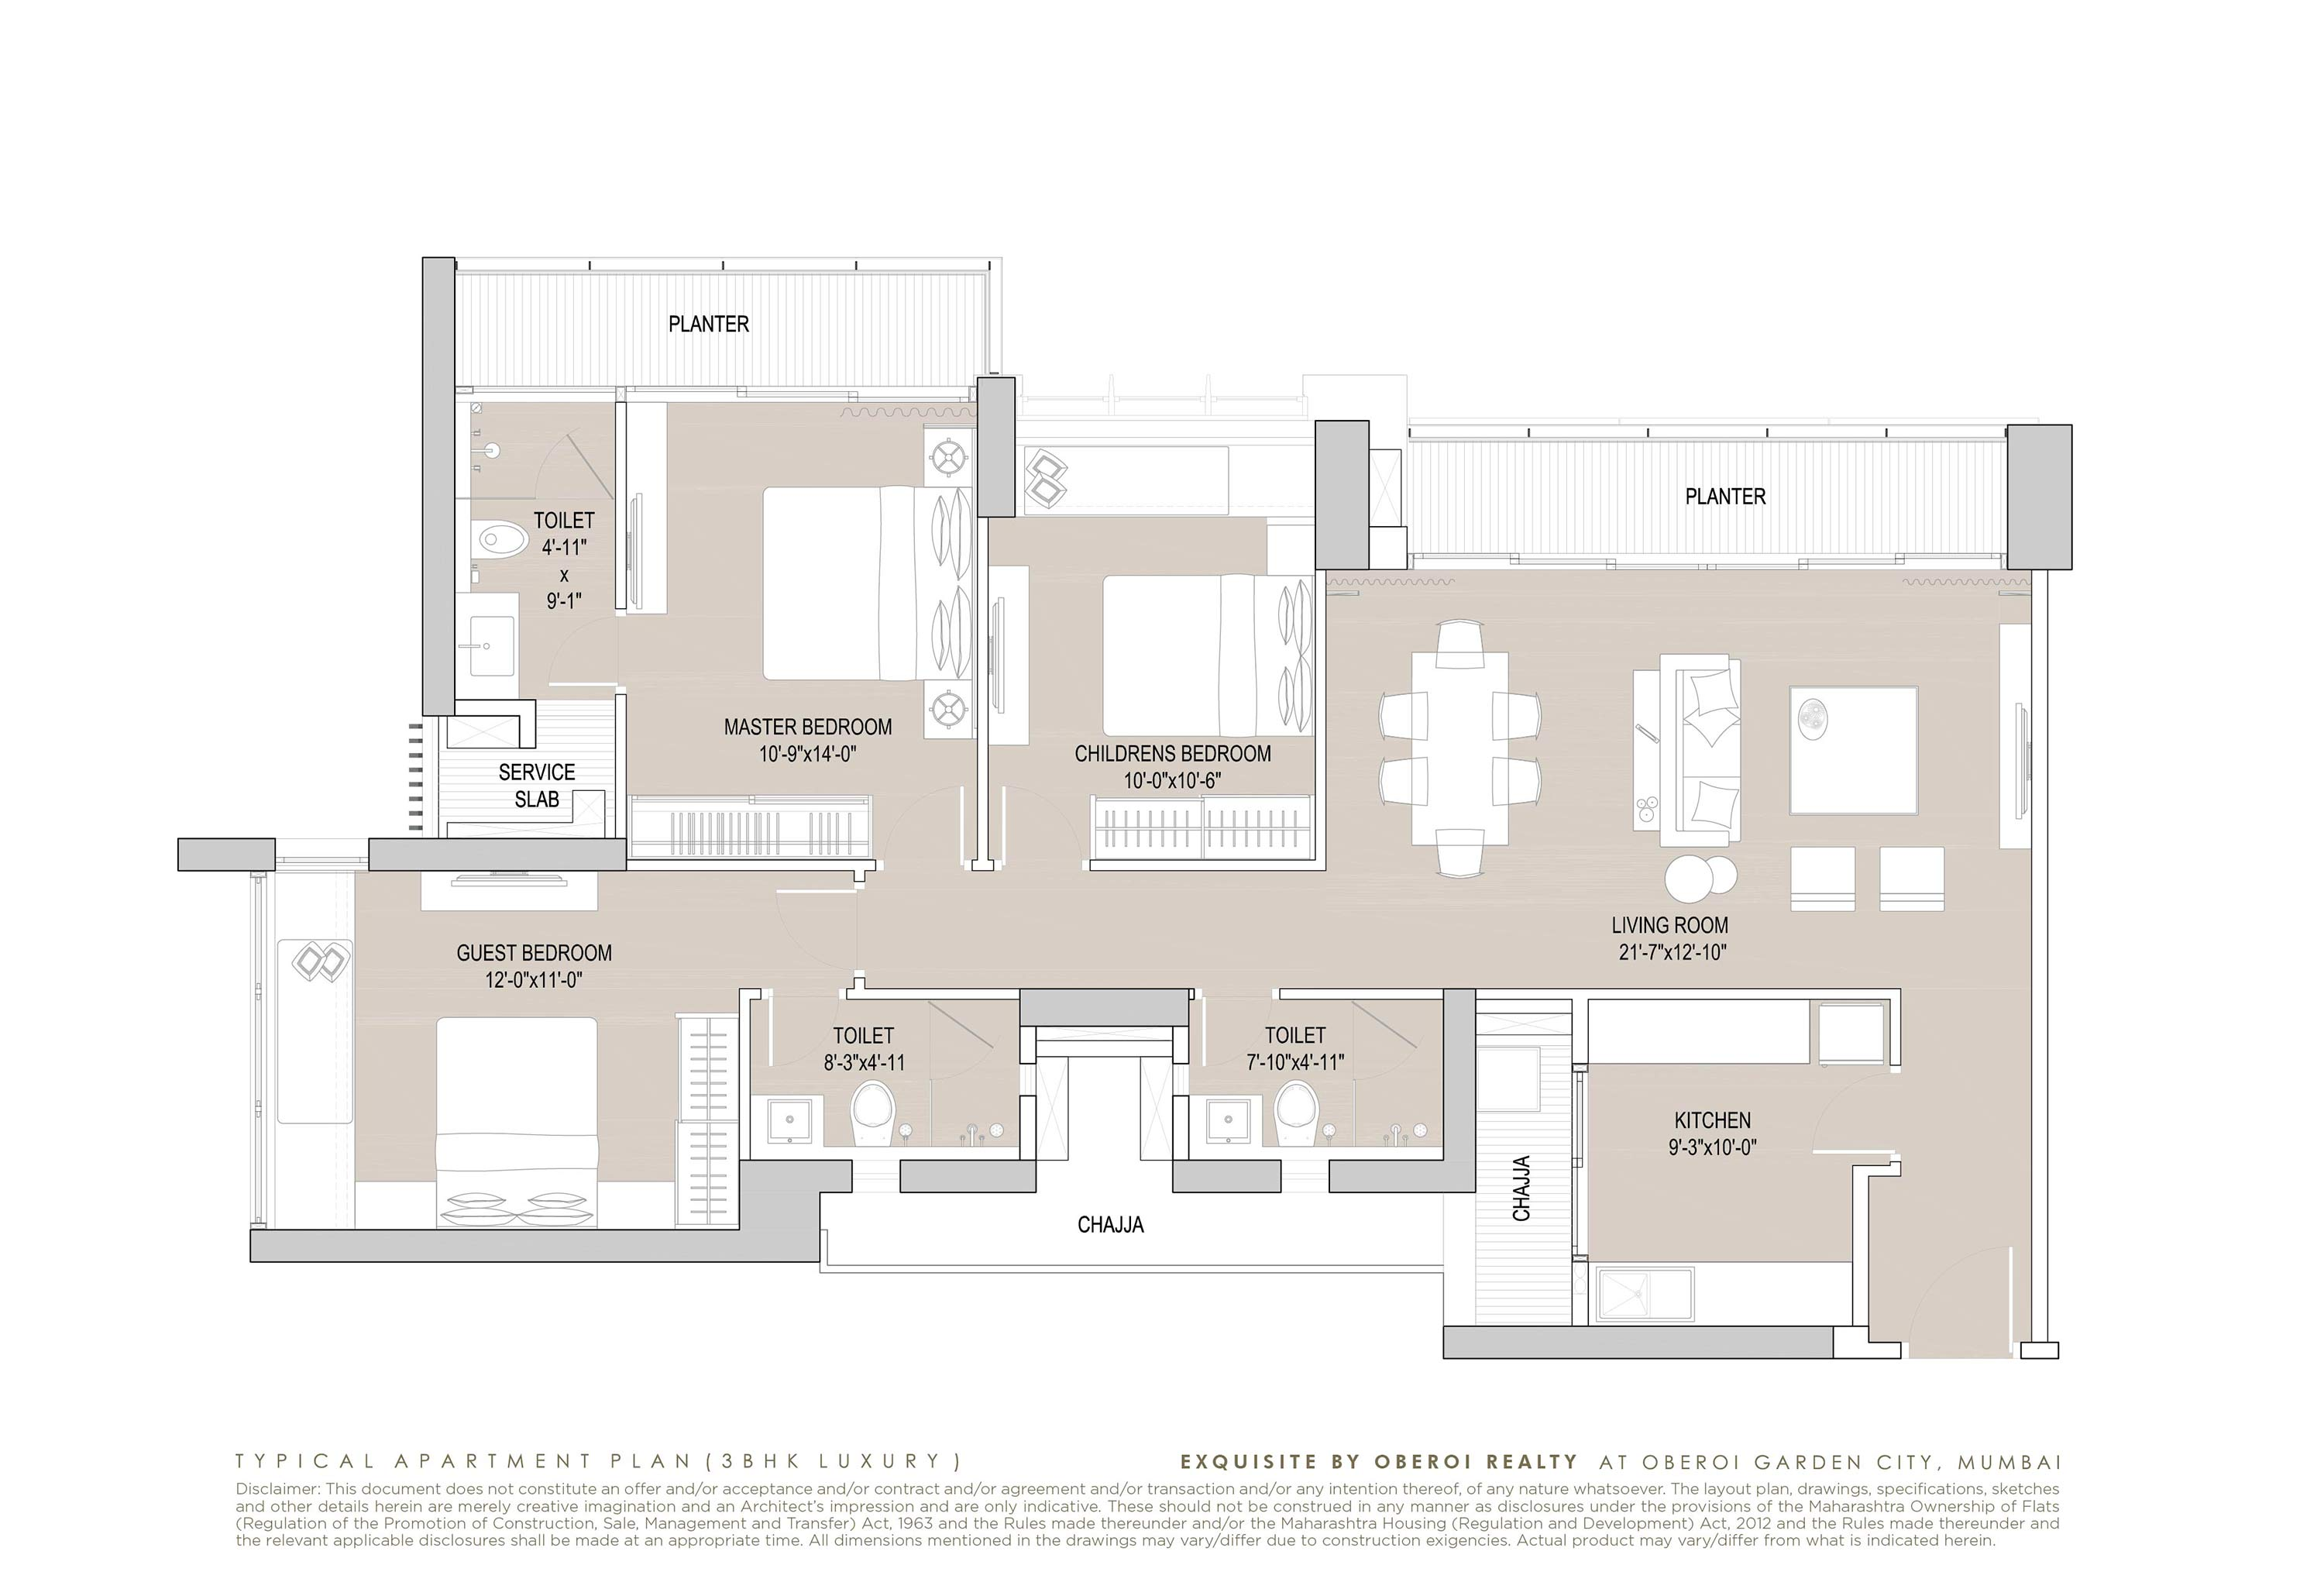 Exquisite: Luxury Flats: Goregaon (E) Mumbai: Floor Plan: 4